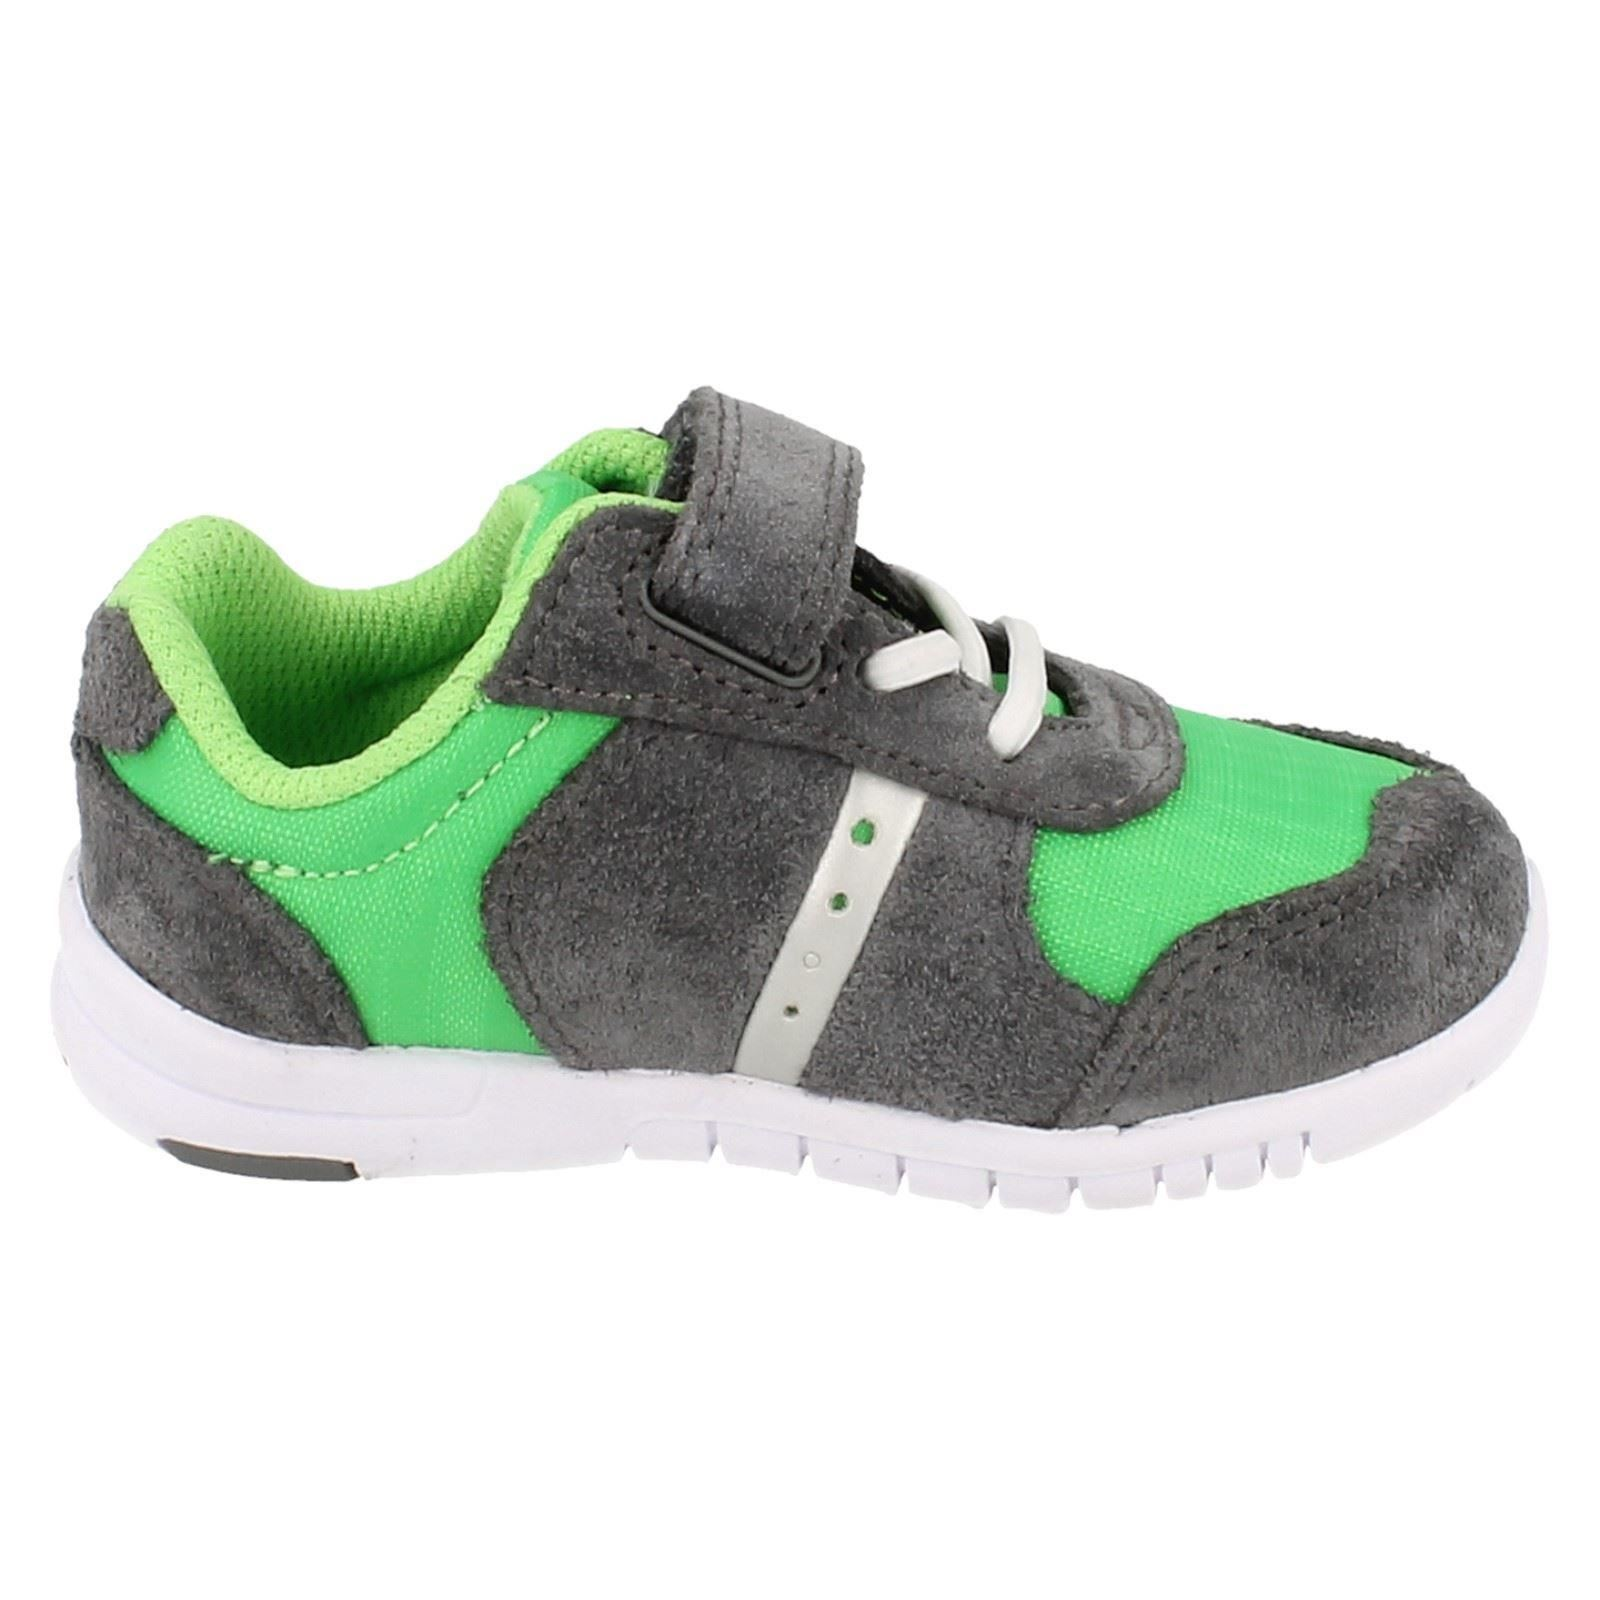 Azon Flex Clarks Casual Chicos Trainers Green S7qwFO7n